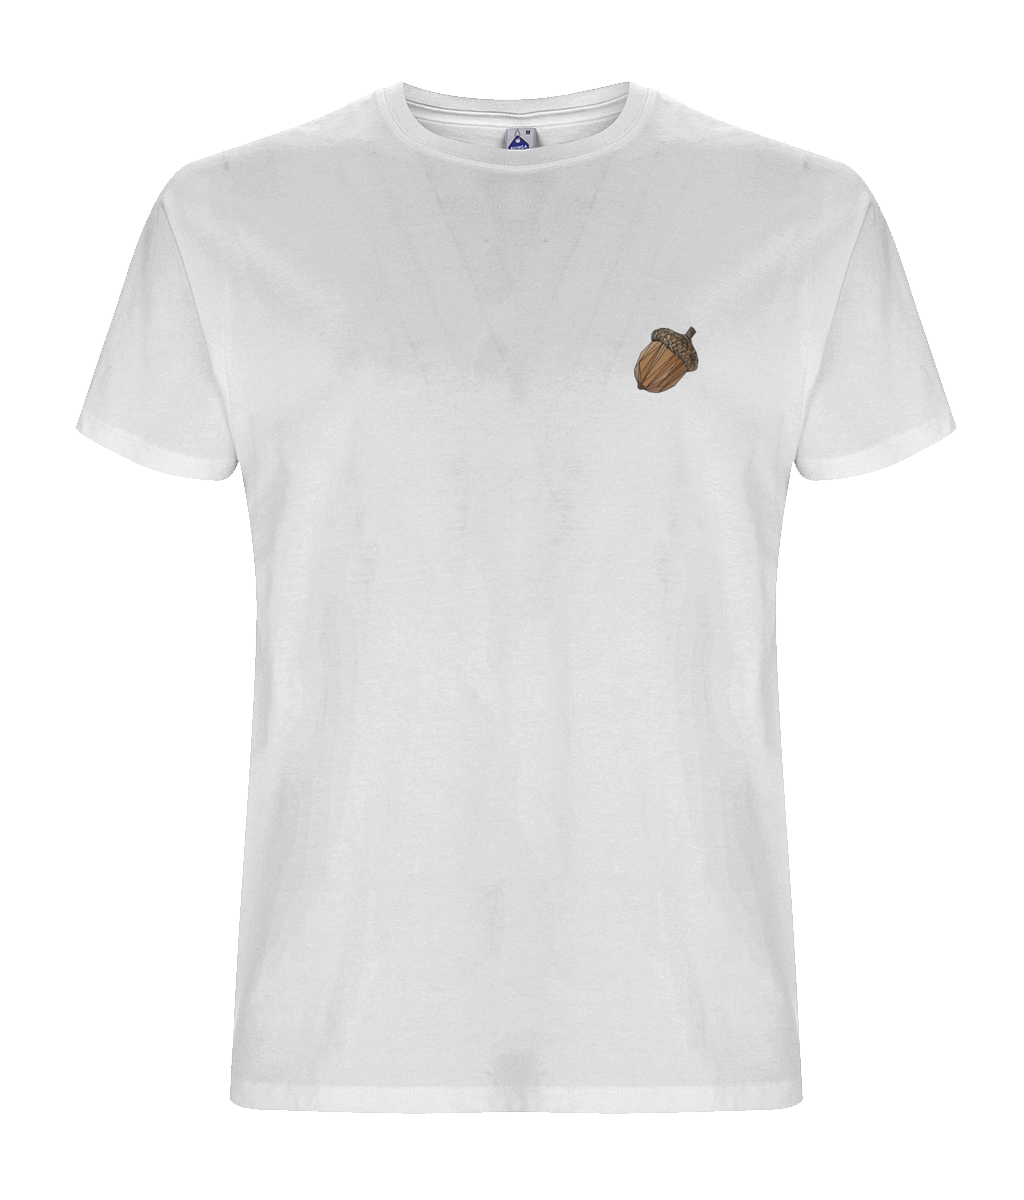 Mighty Acorn Men's White Tee